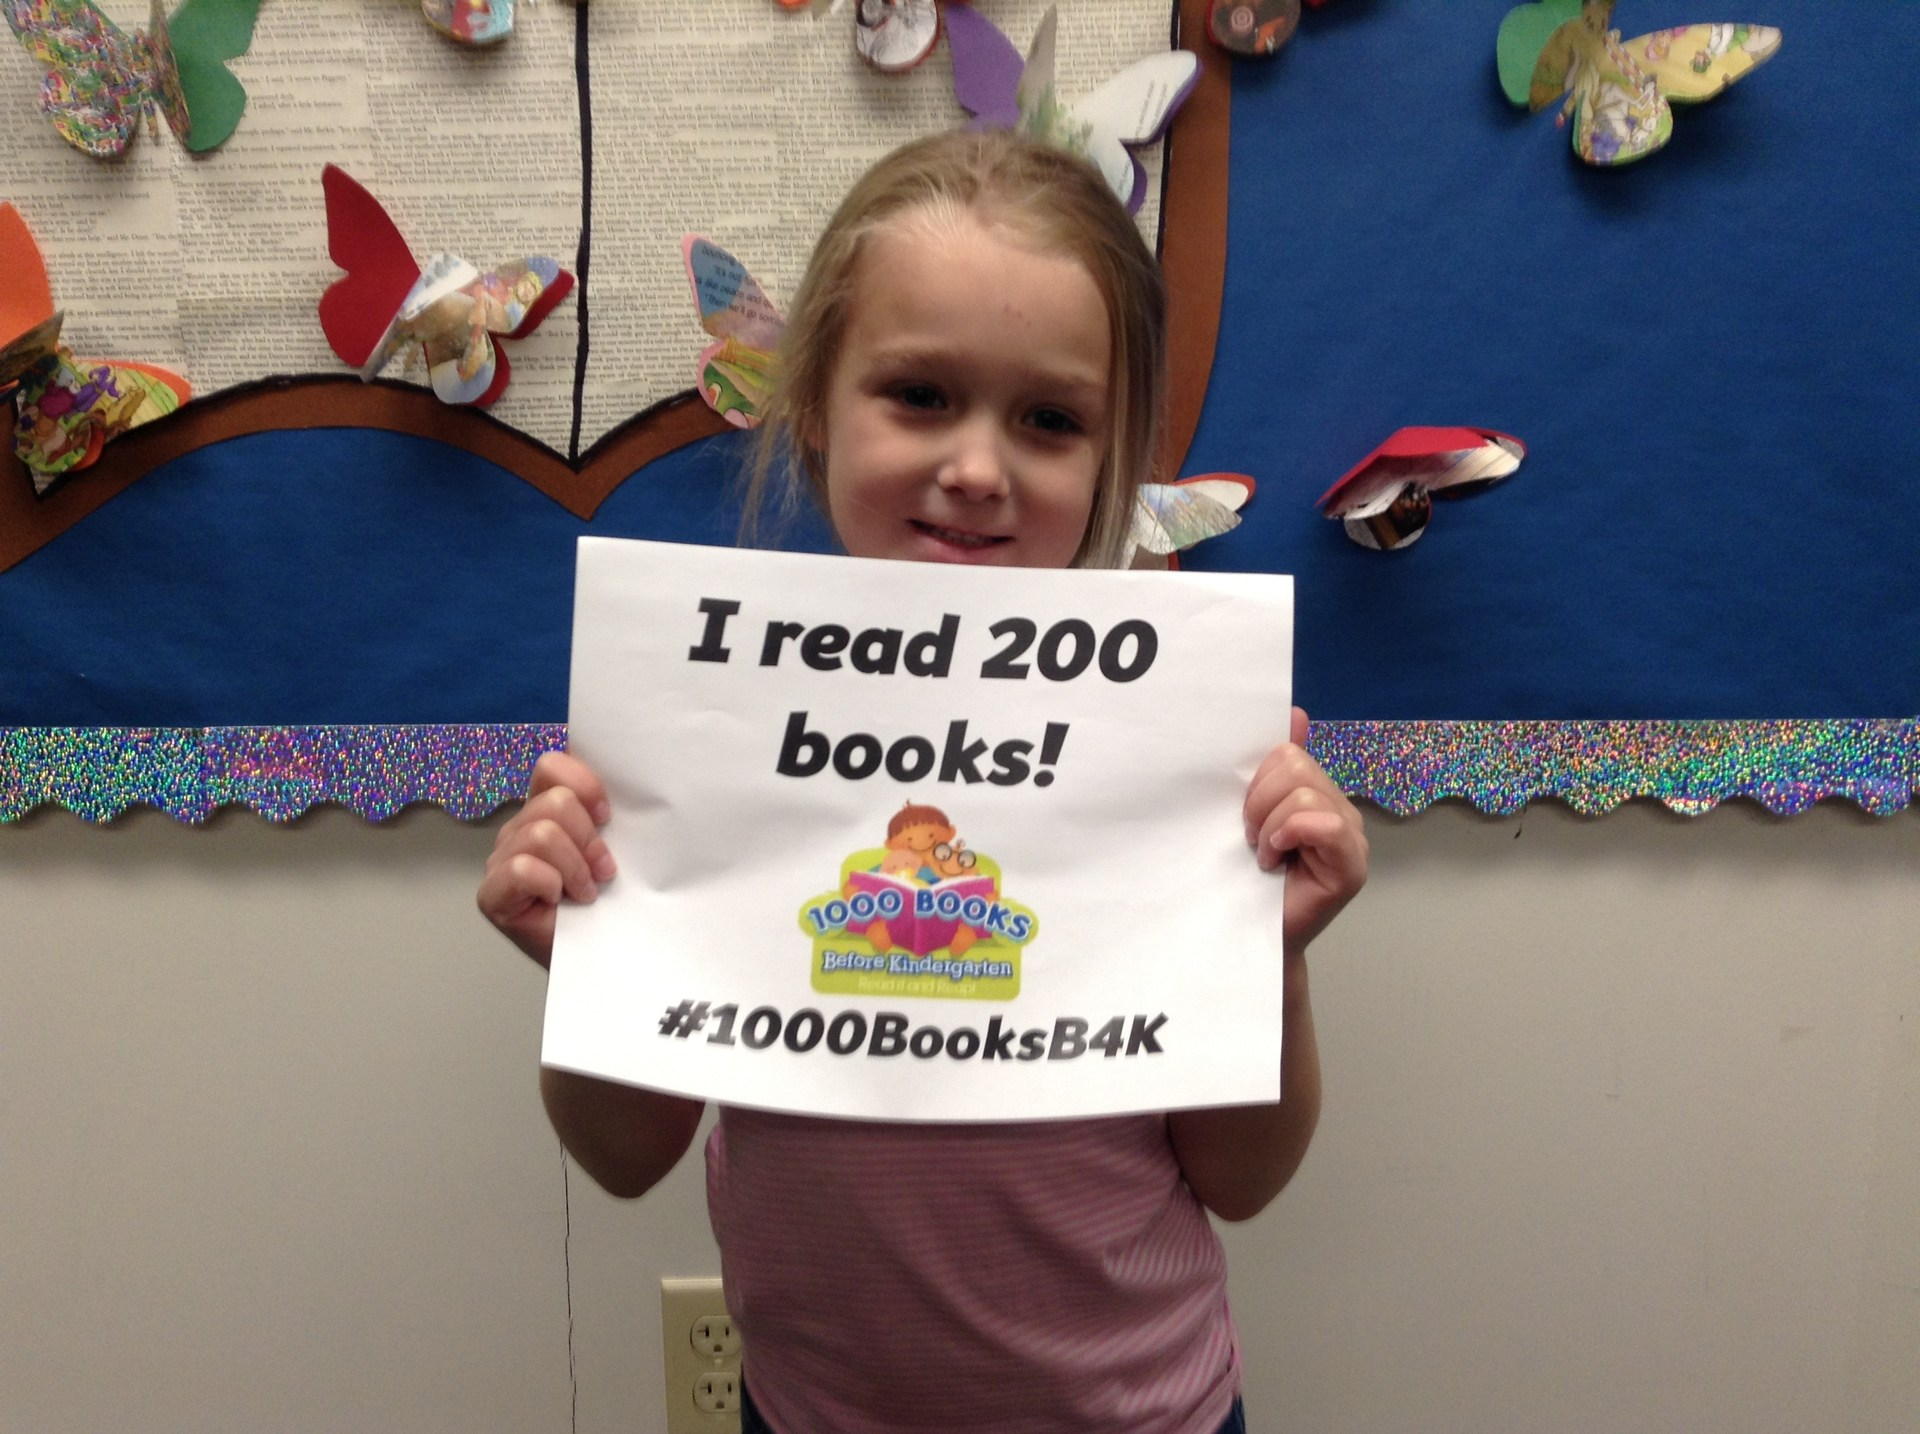 Photo of a preschool student showing that she has read 200 books.